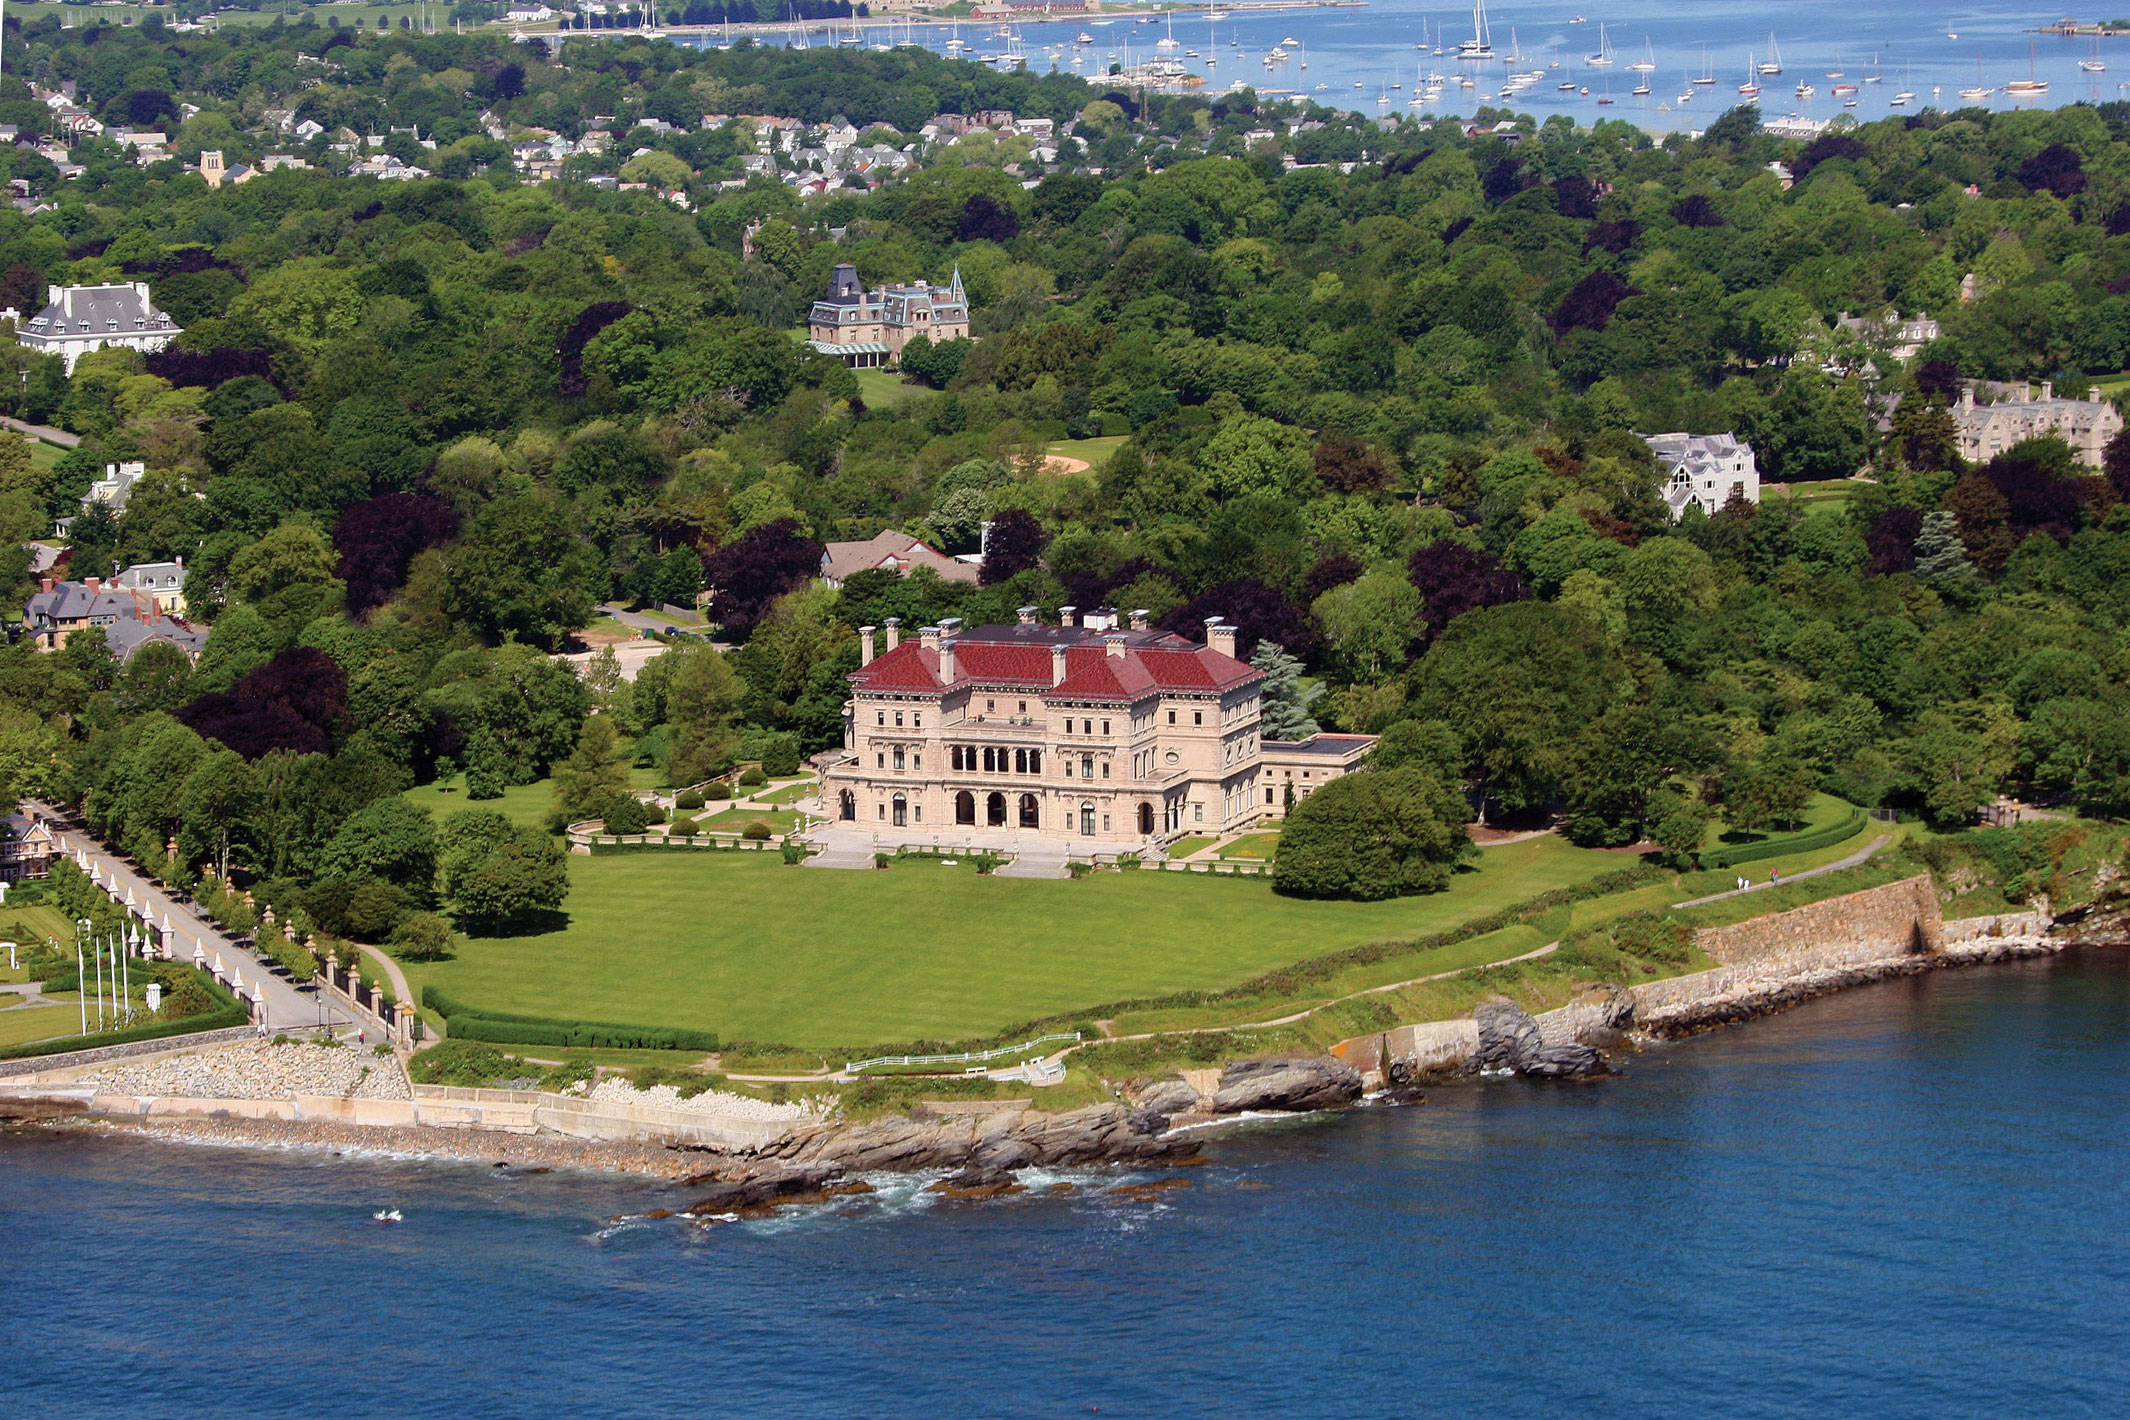 Mansions in Newport, Rhode island